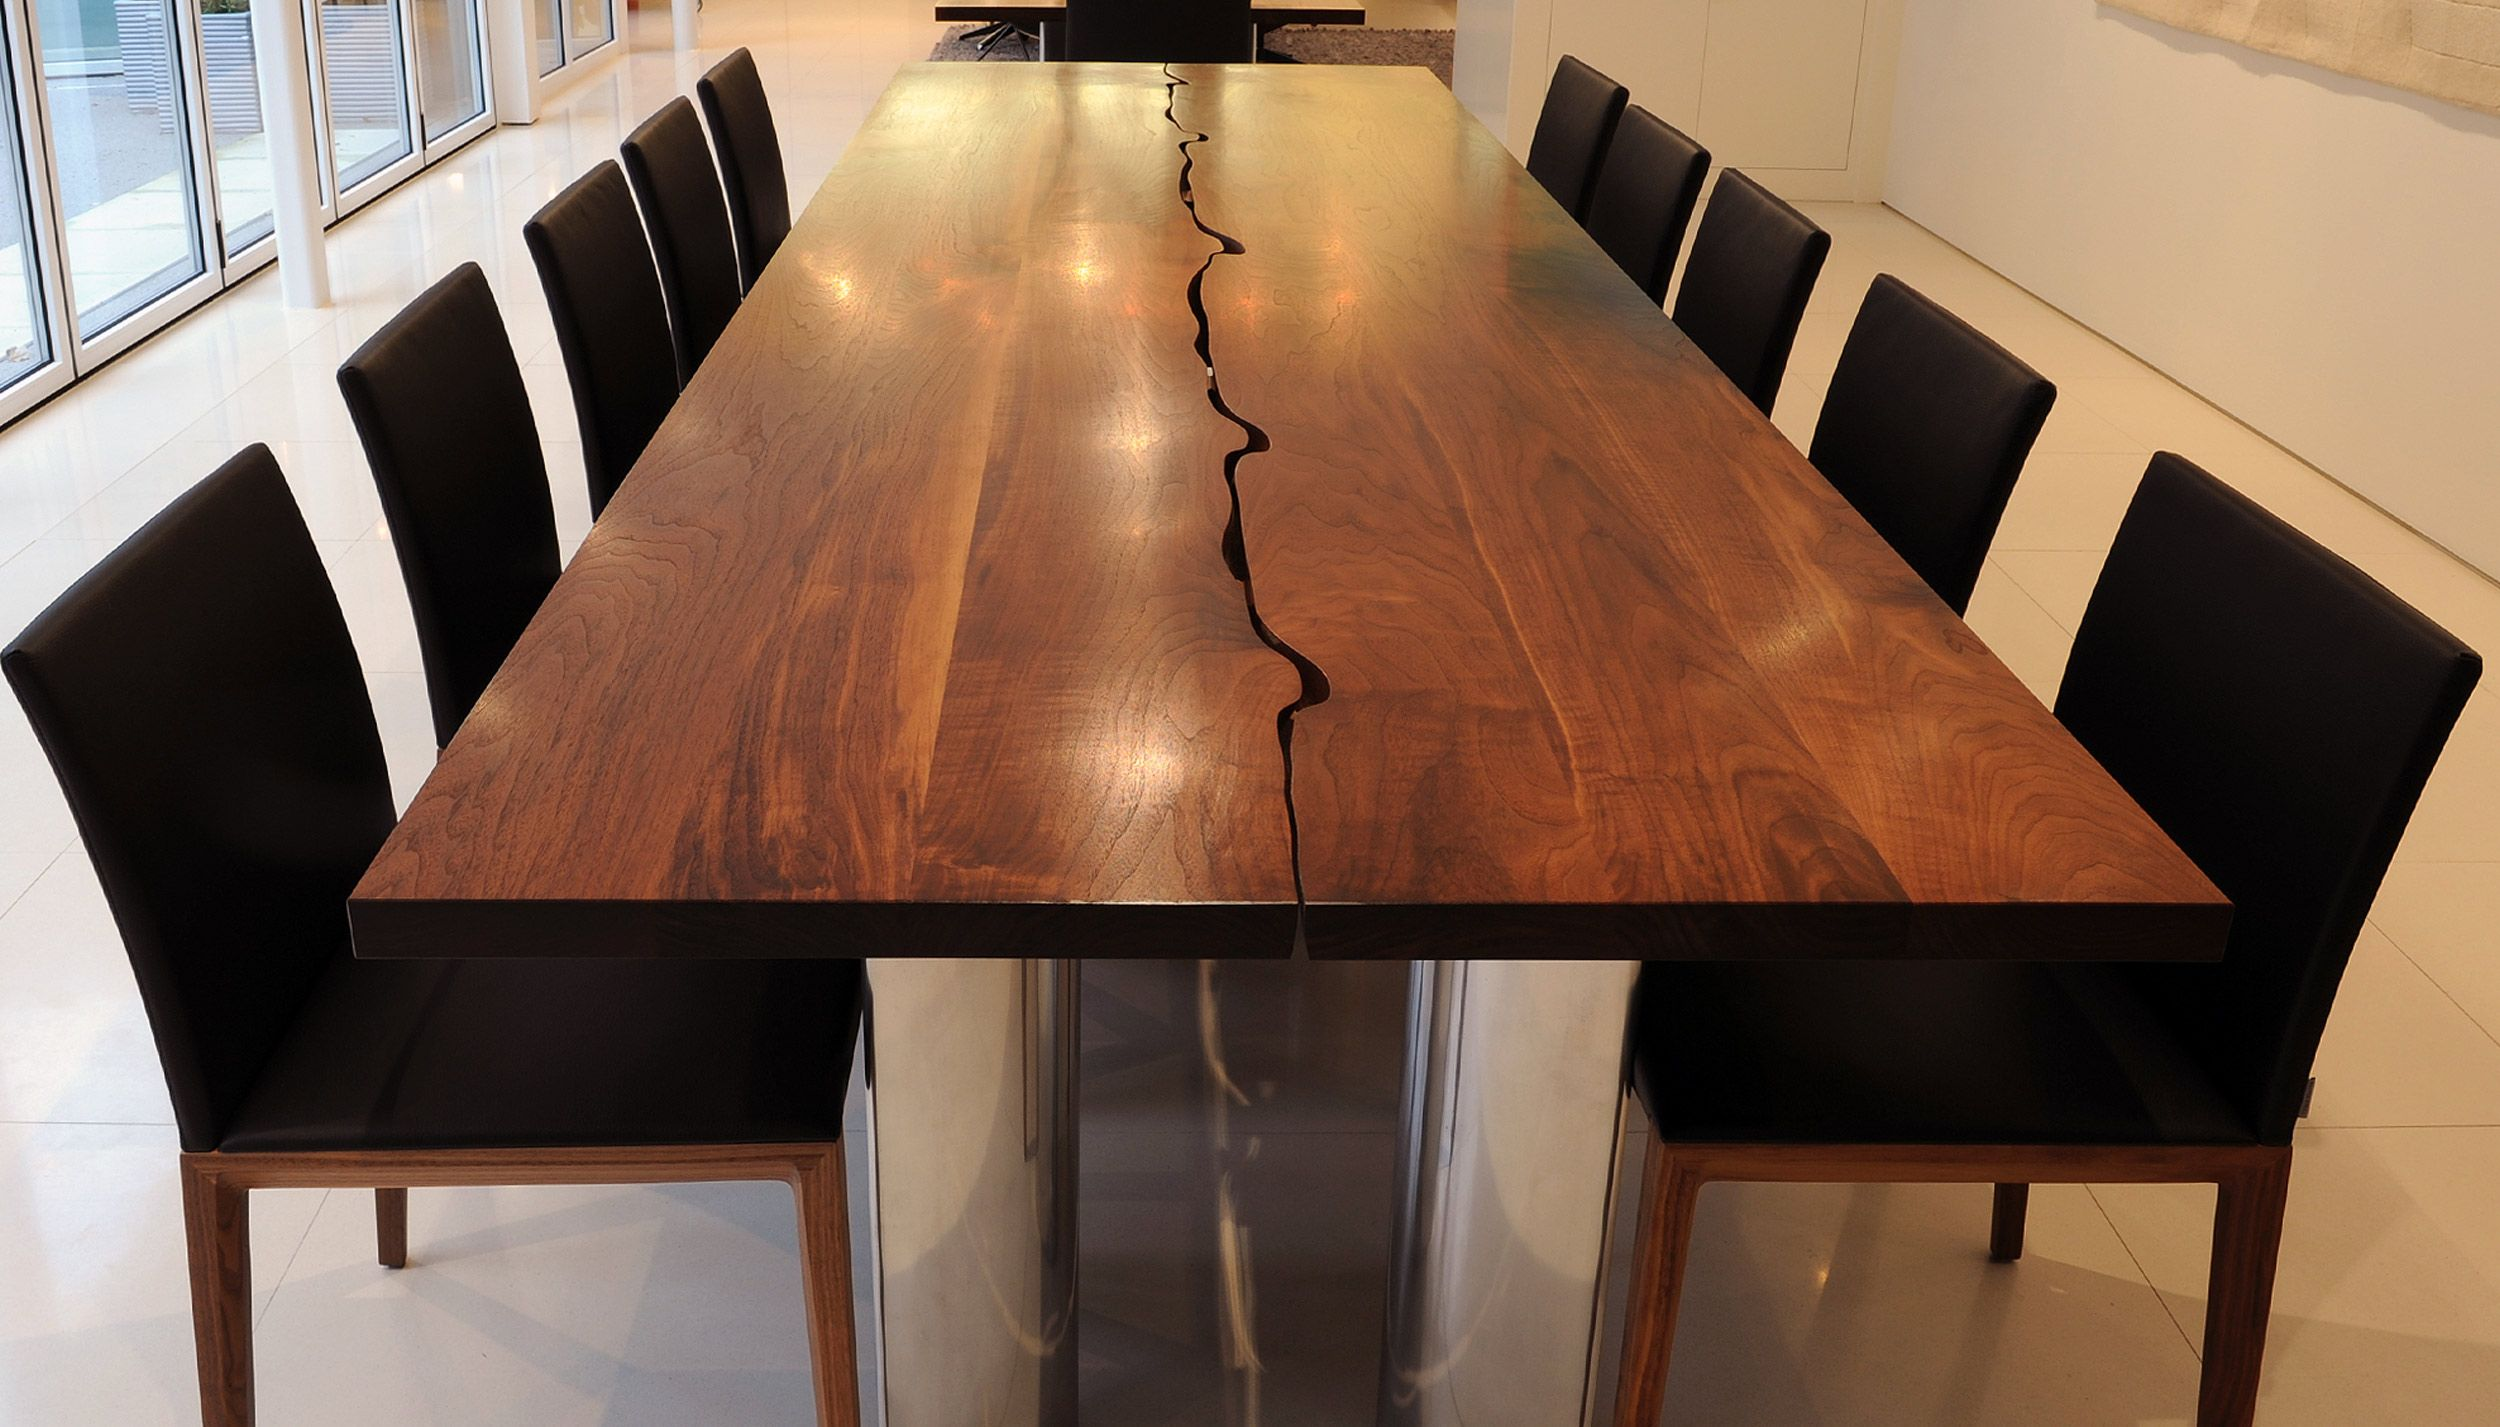 amir's bespoke modern dining table www.finefurnituremaker